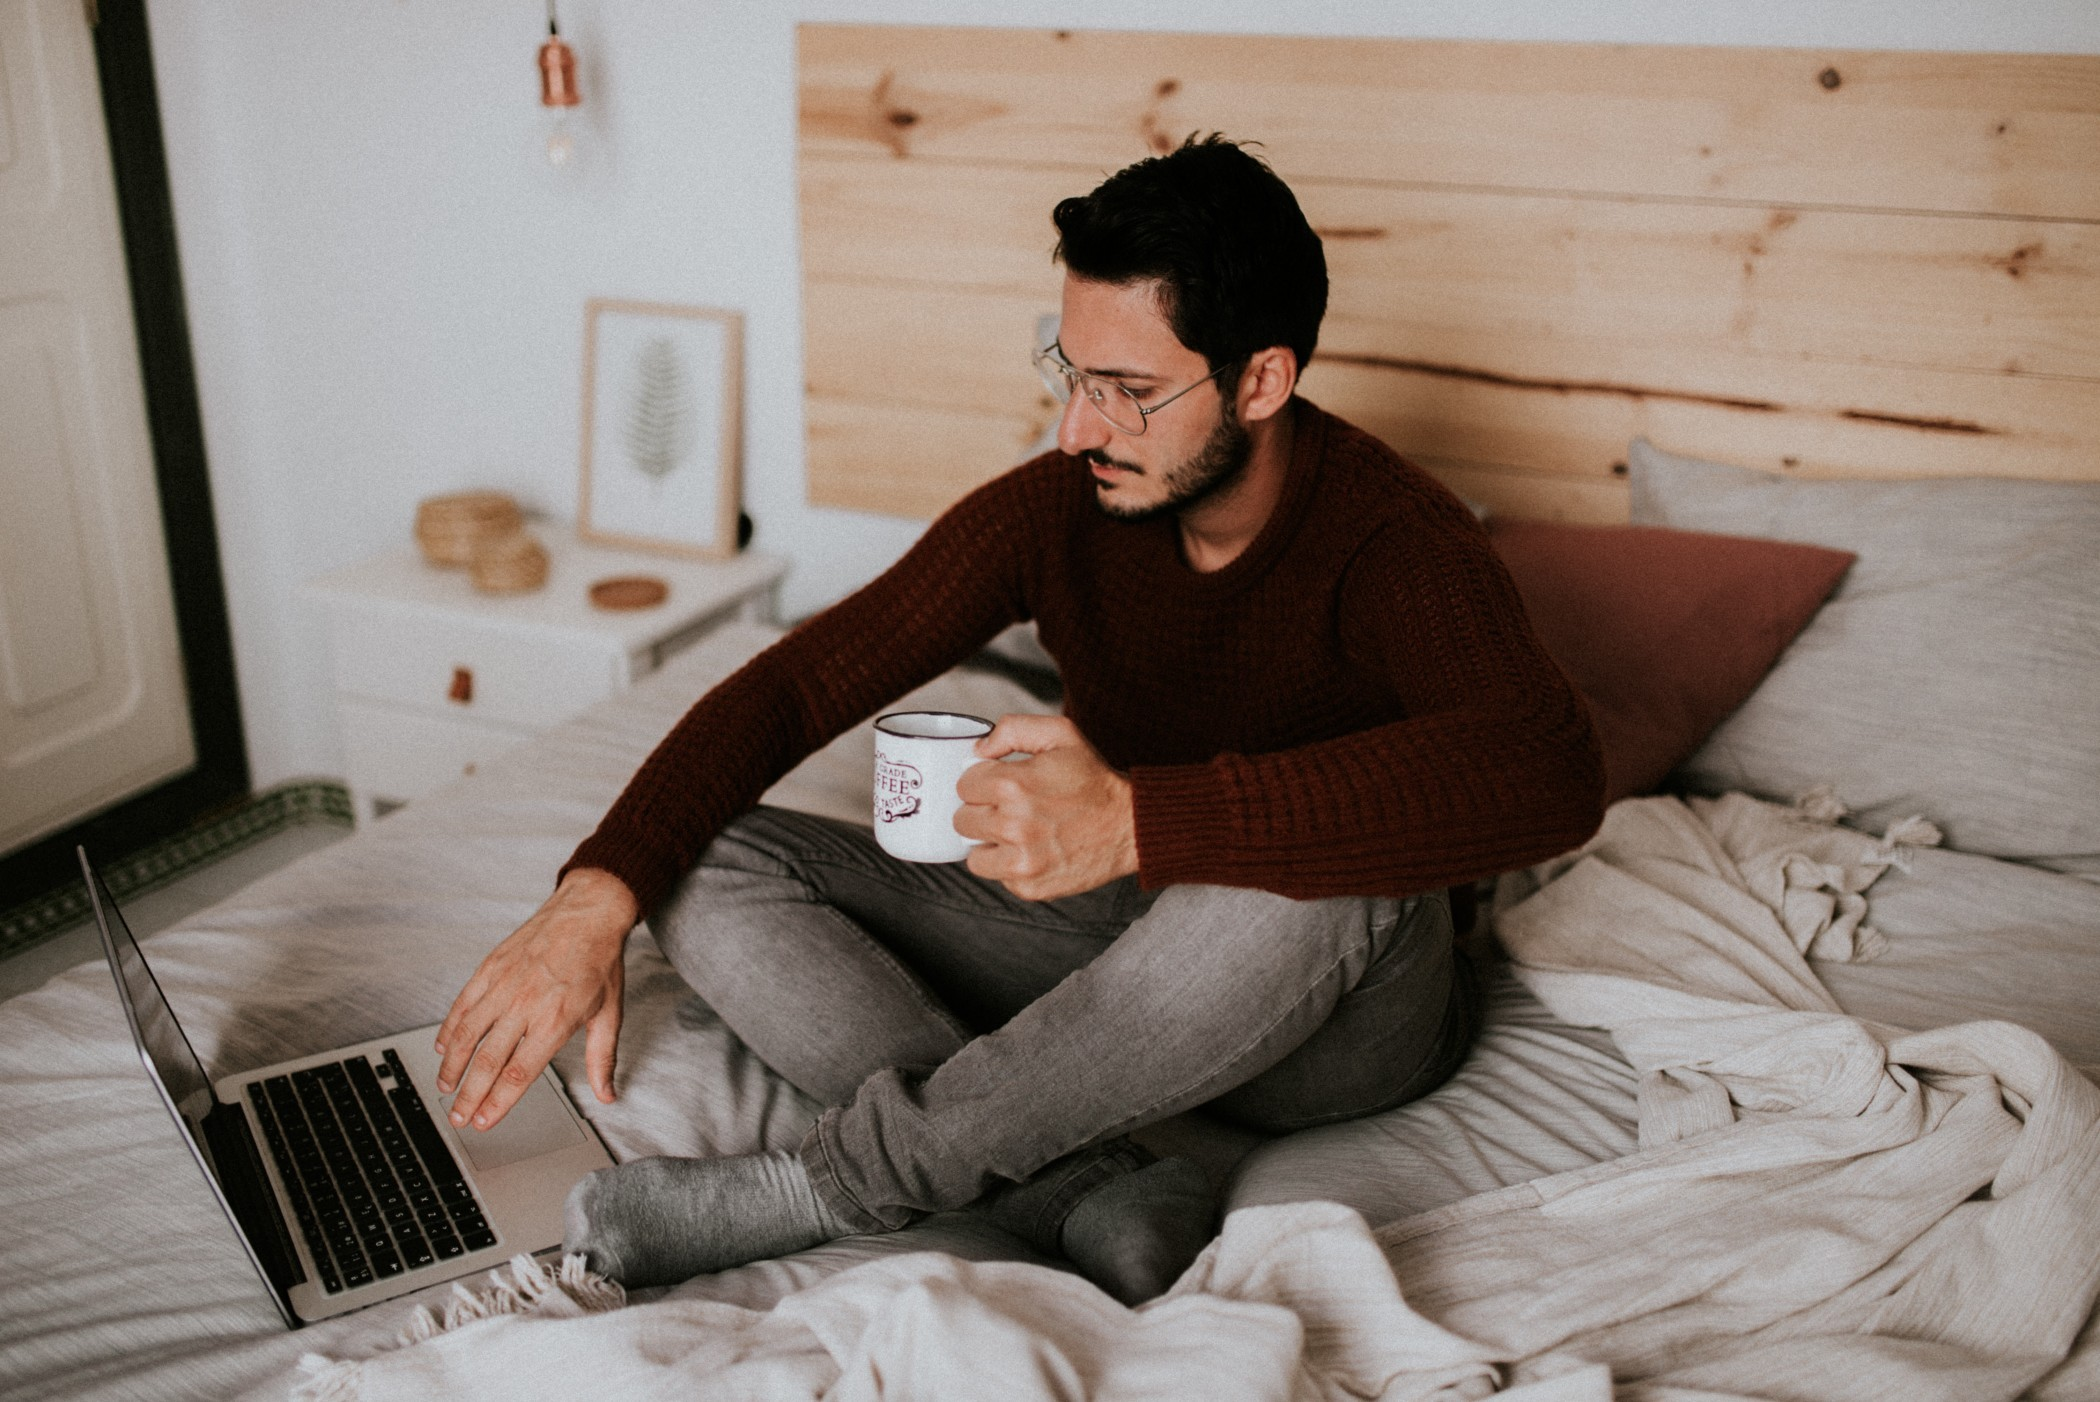 Young man on a laptop in bed